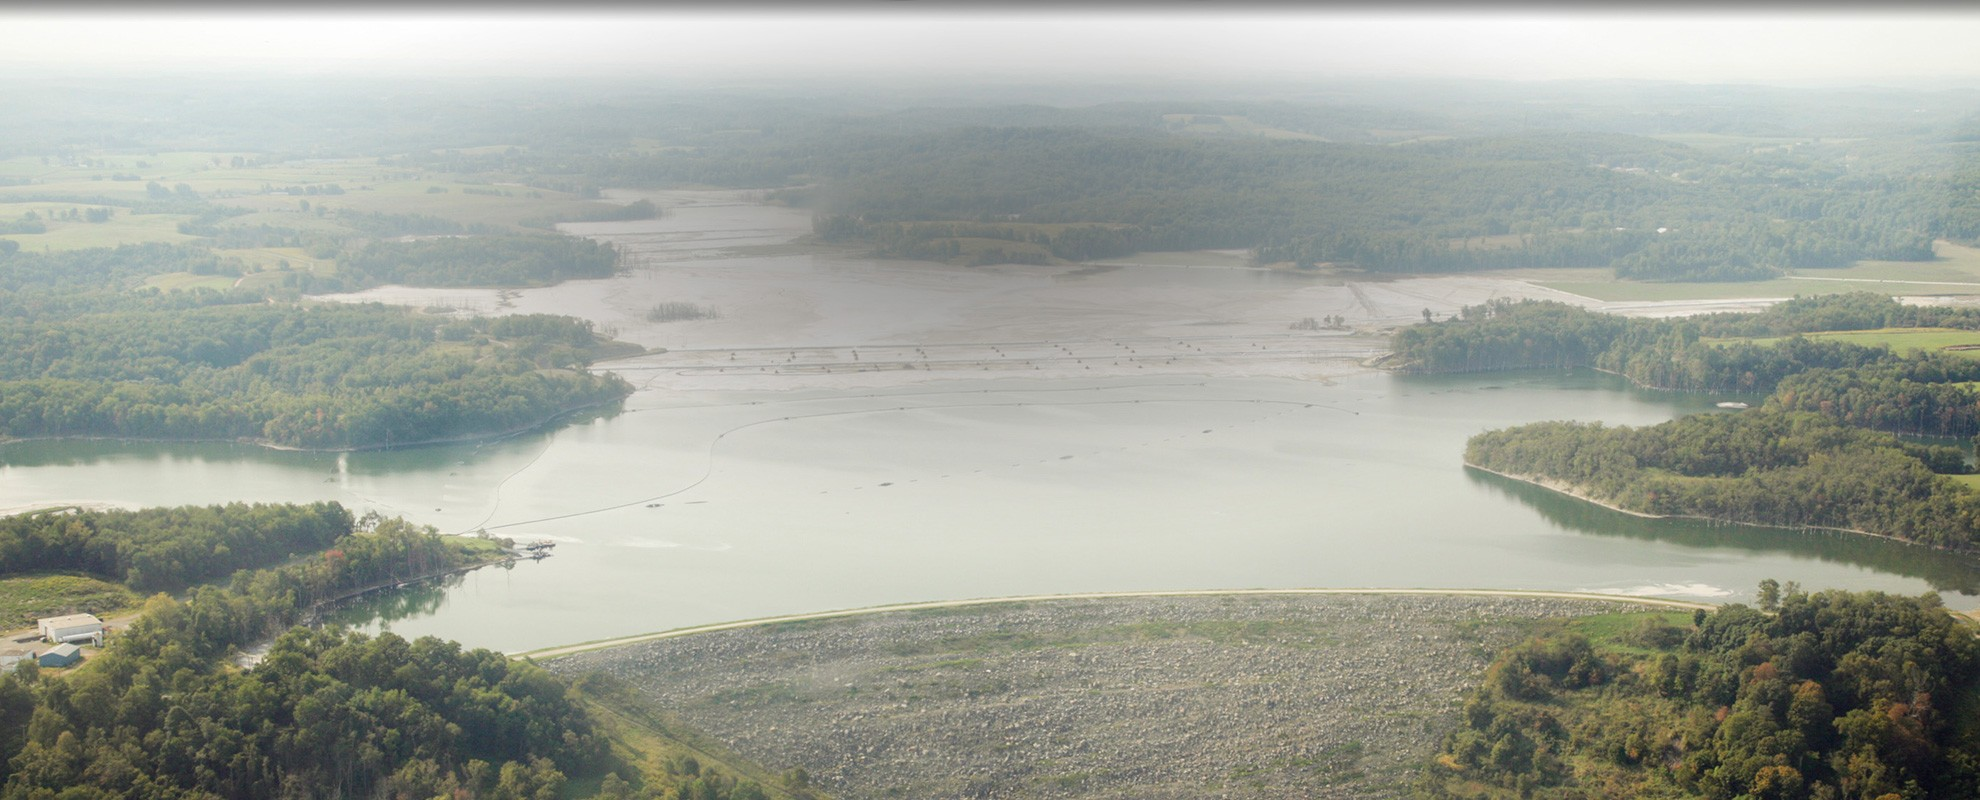 Little Blue Run, bordering Pennsylvania and West Virginia, is the largest coal ash dump in the nation.